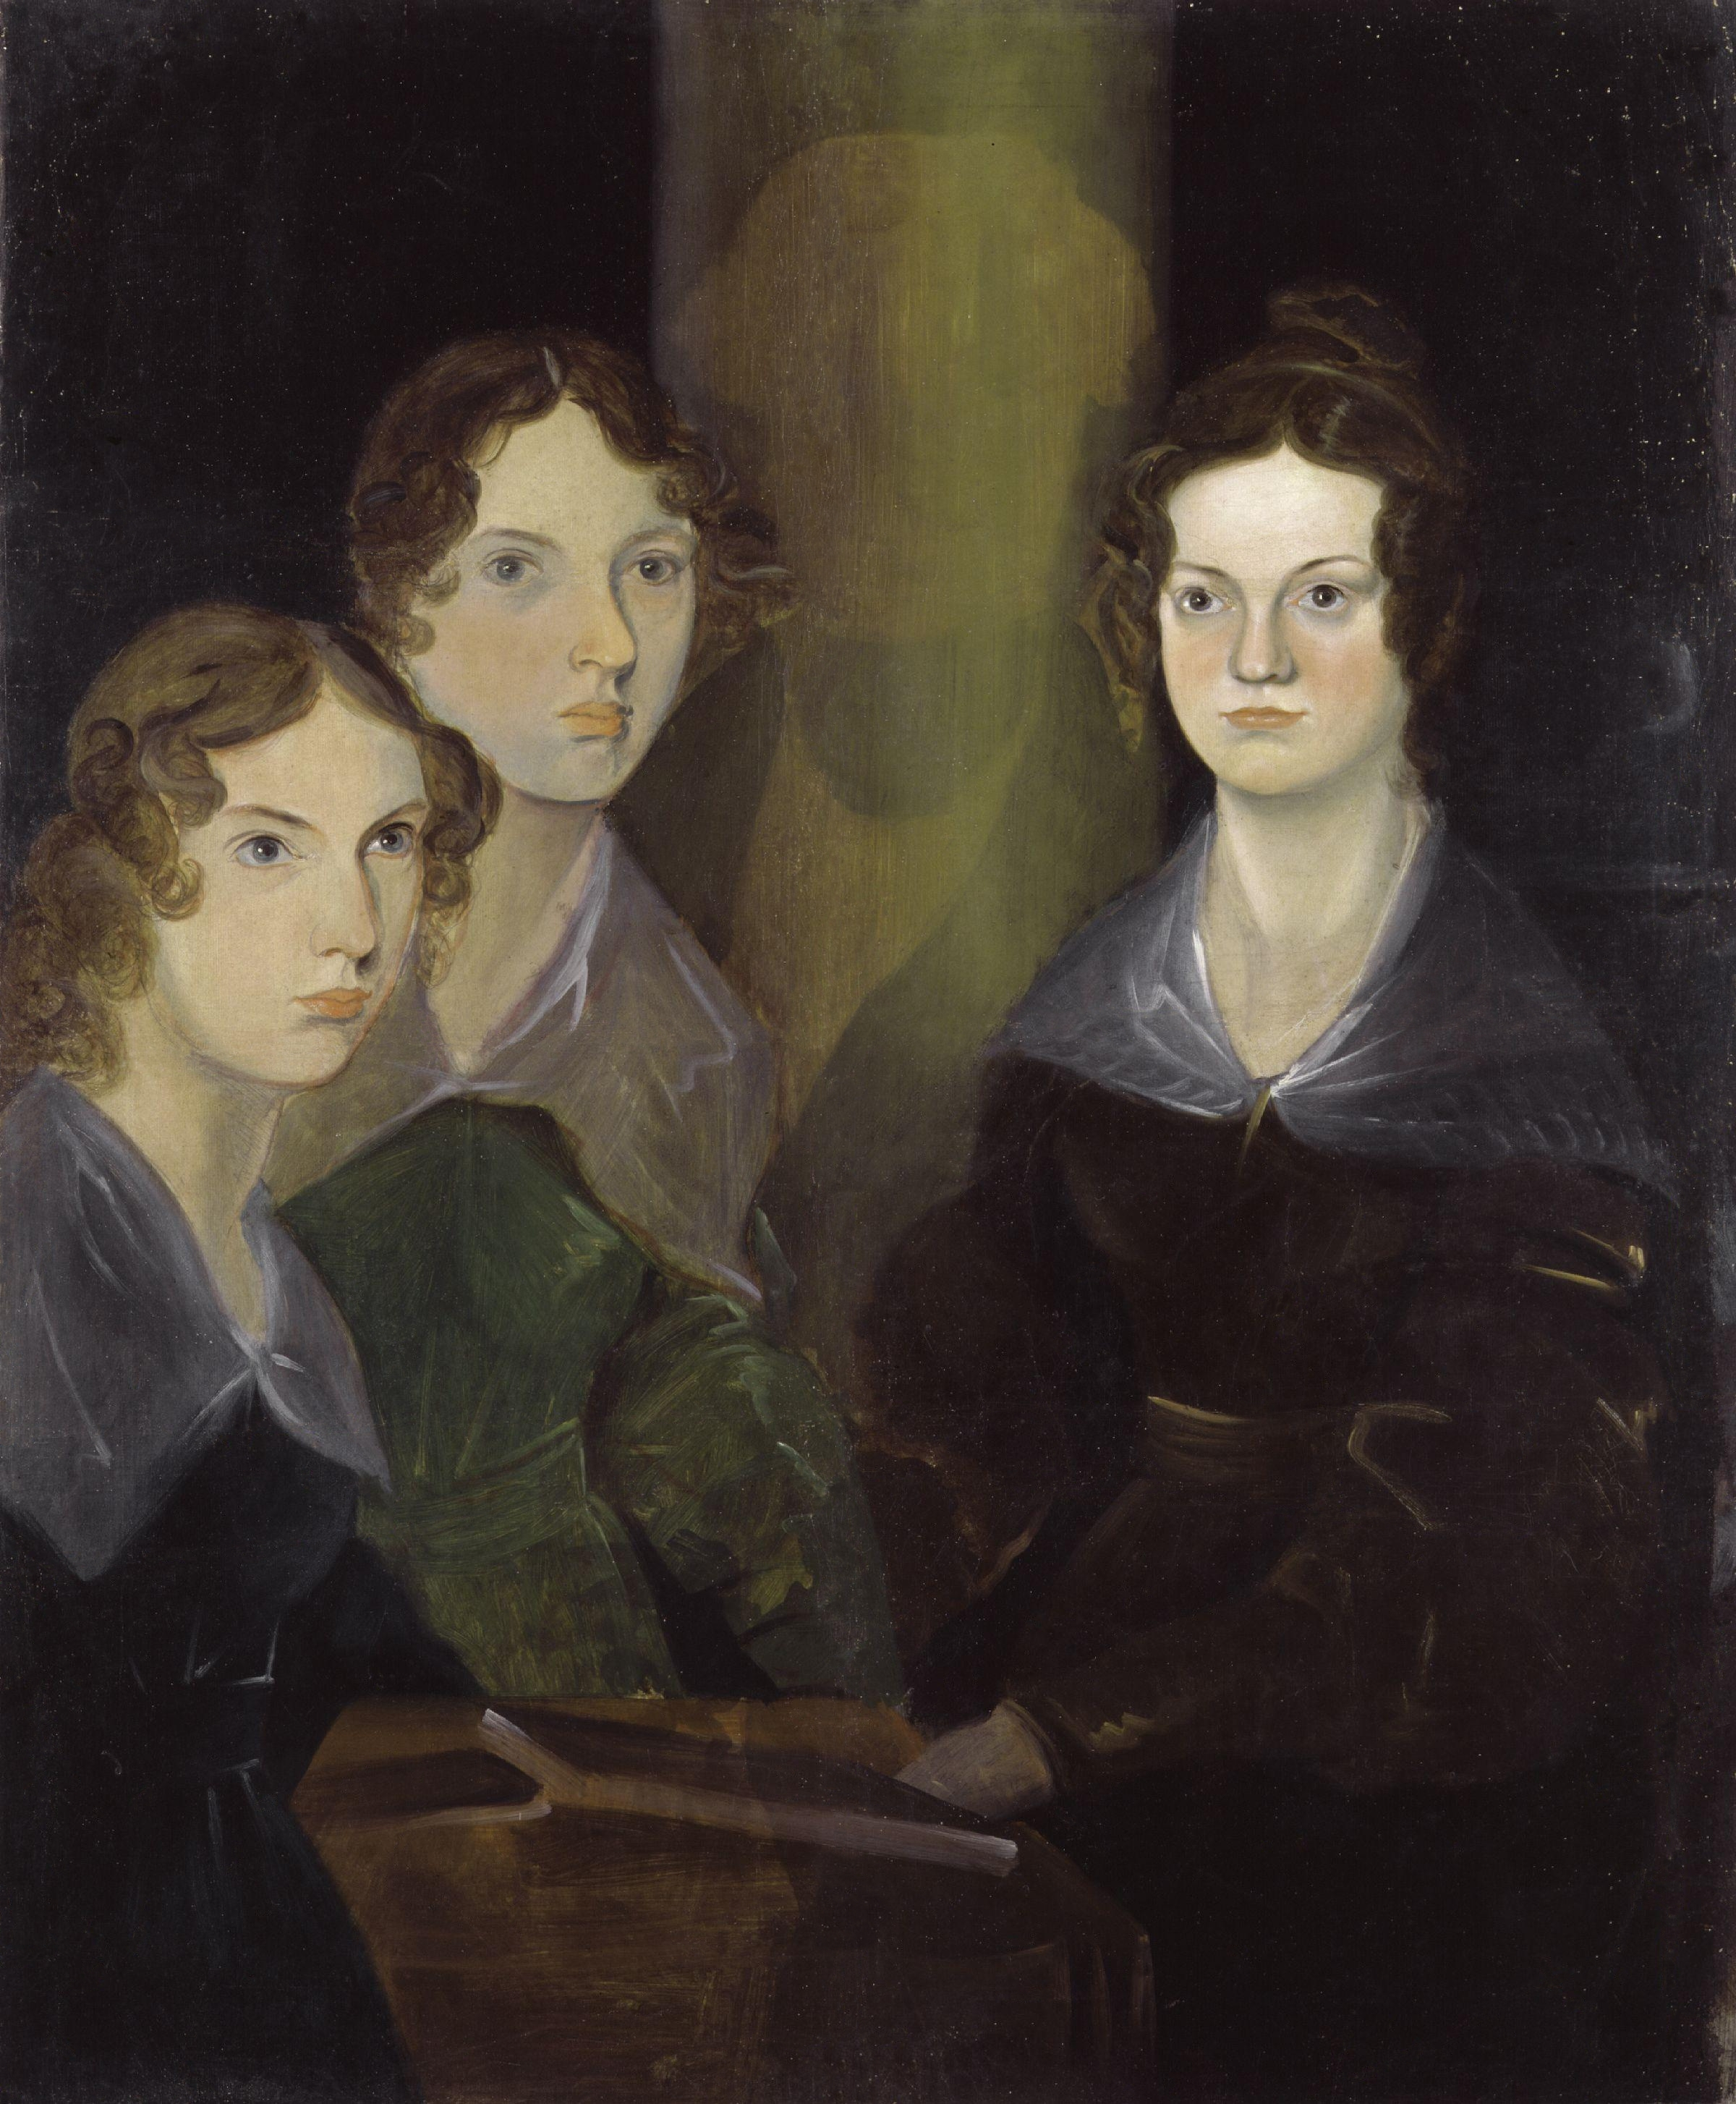 A portrait of the Brontë sisters by their brother Branwell.